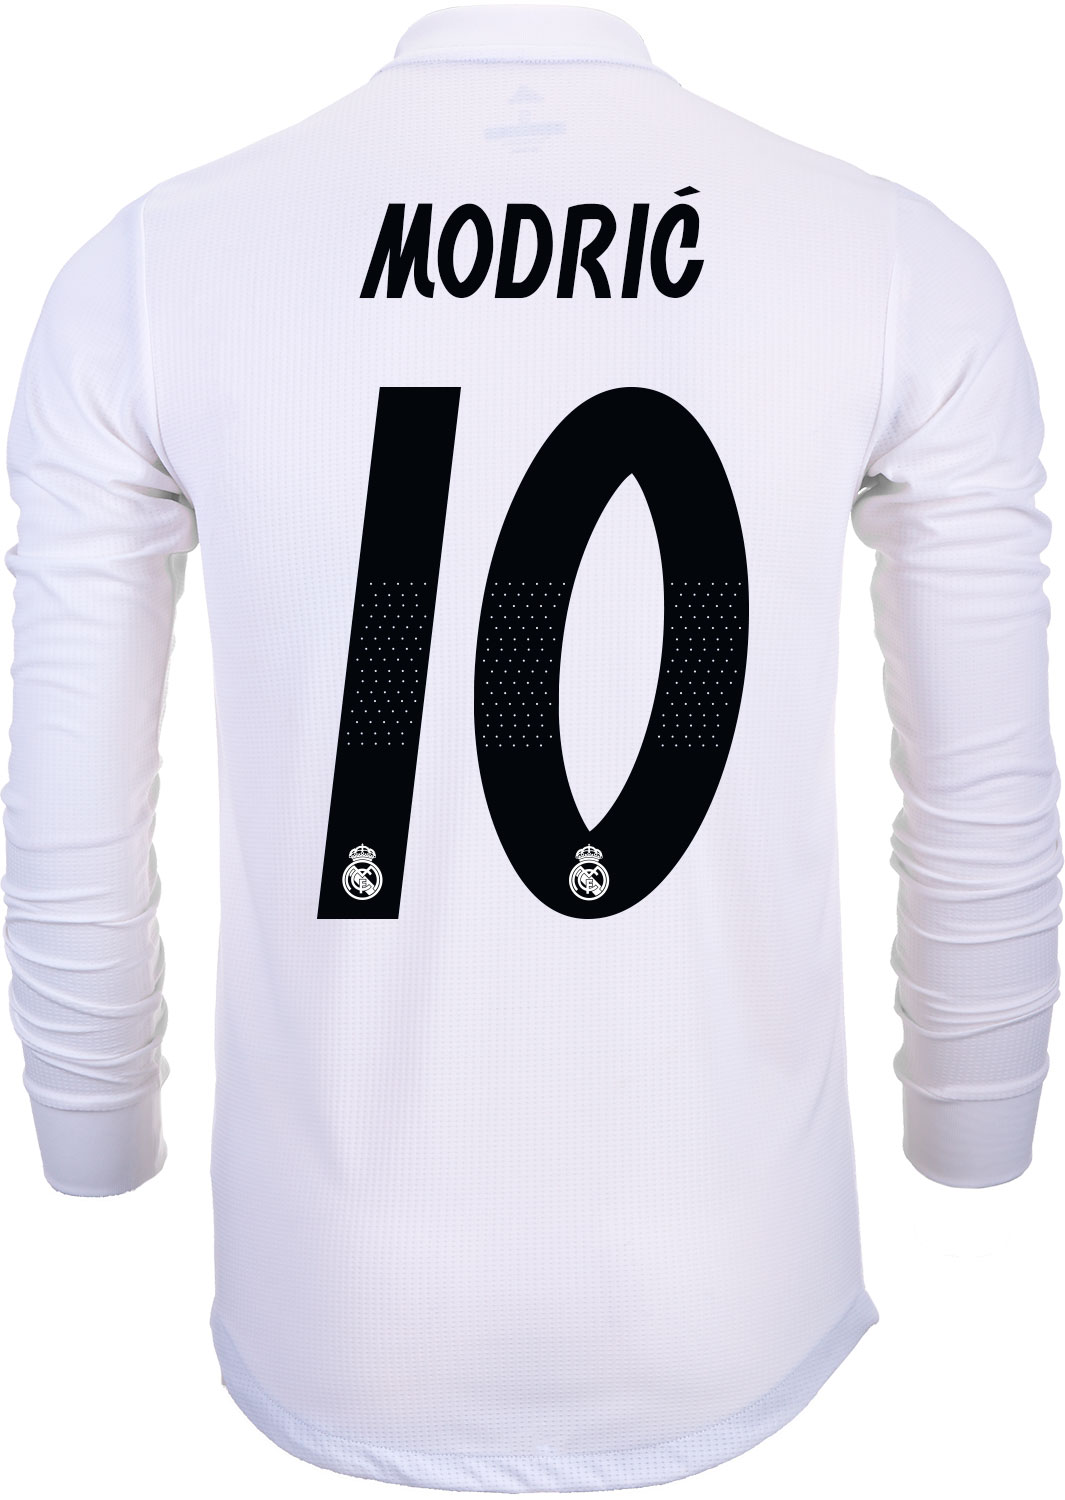 check out af684 43a5b 2018/19 adidas Kids Luka Modric Real Madrid L/S Home Jersey ...